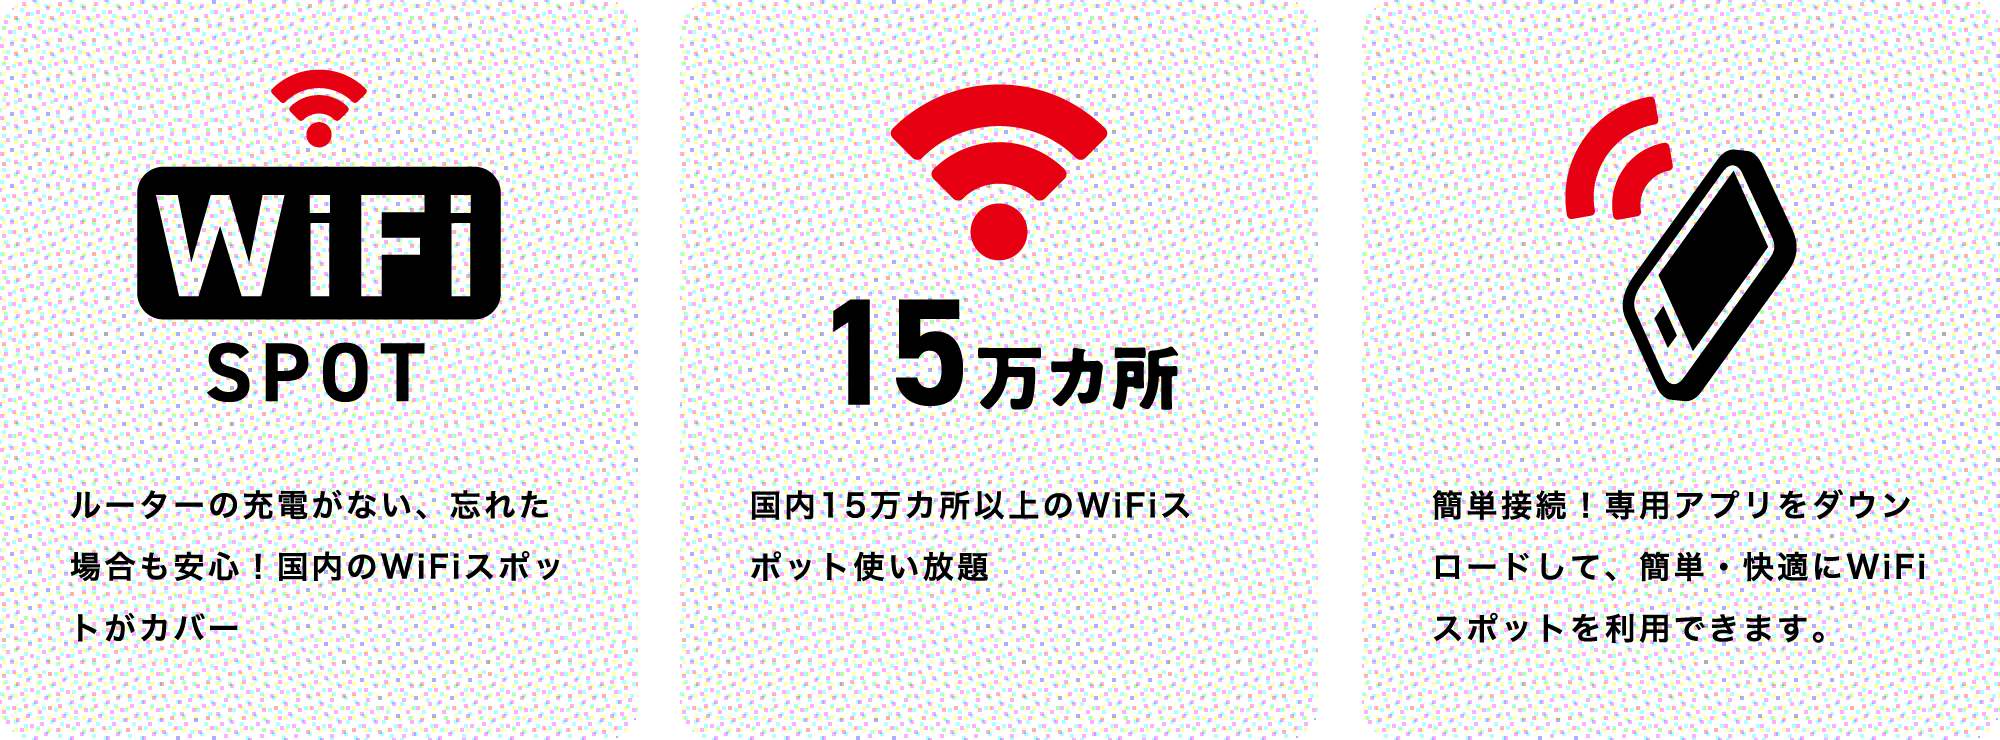 THE WiFi WiFiスポット